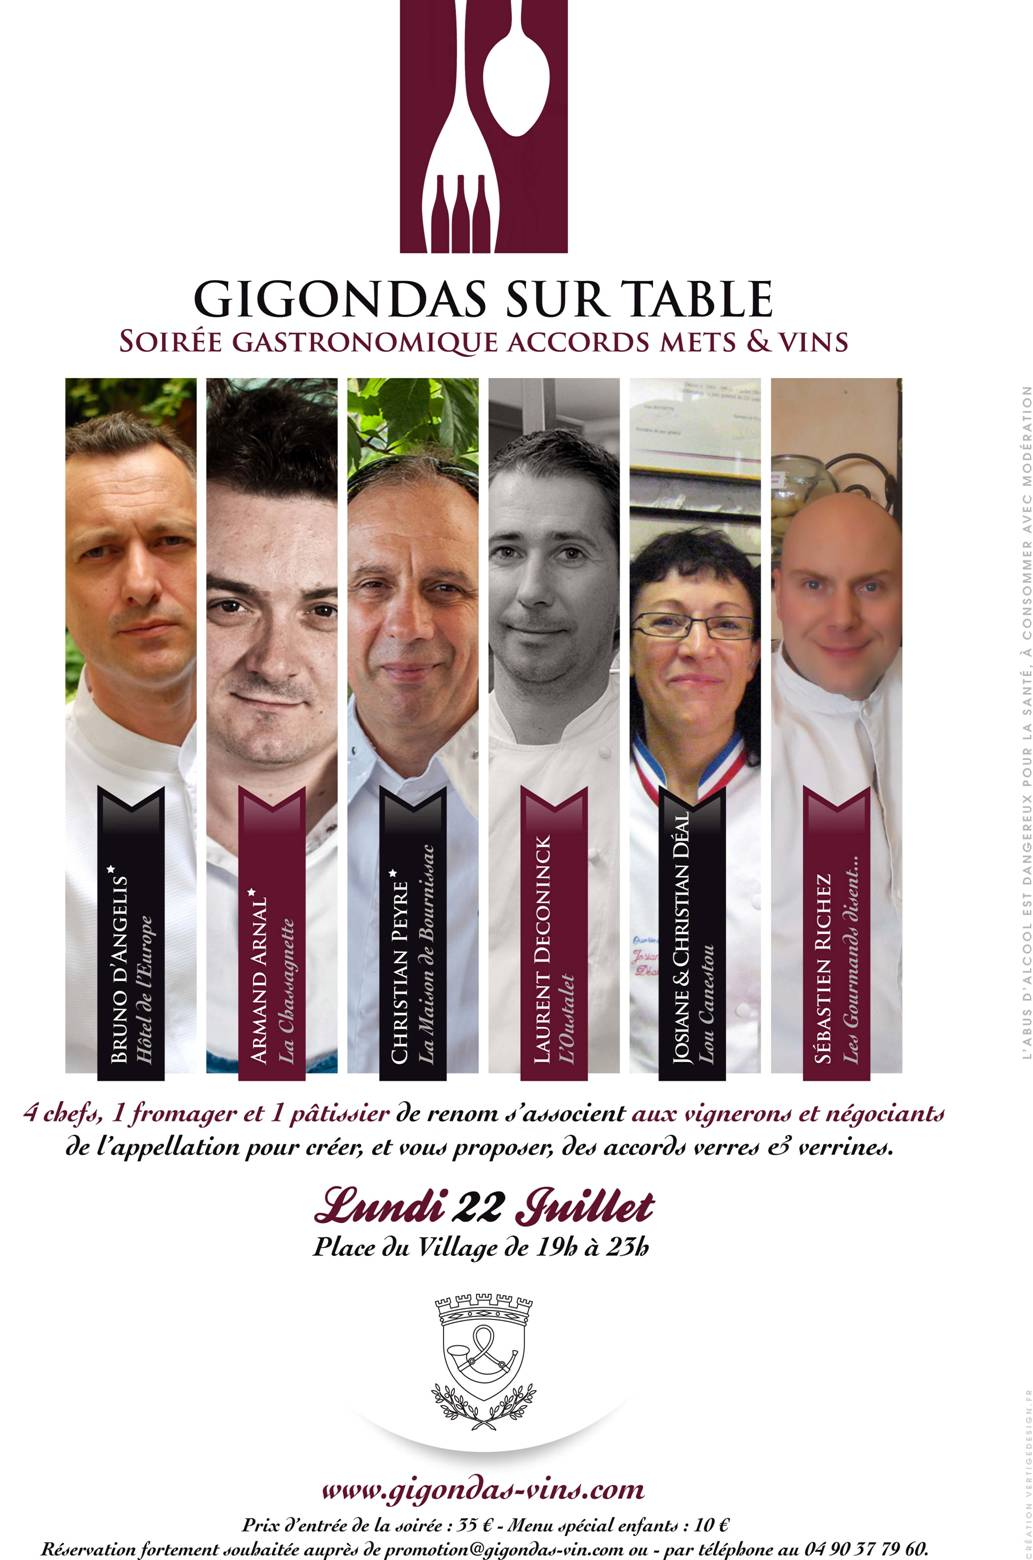 rencontres gourmandes 2013